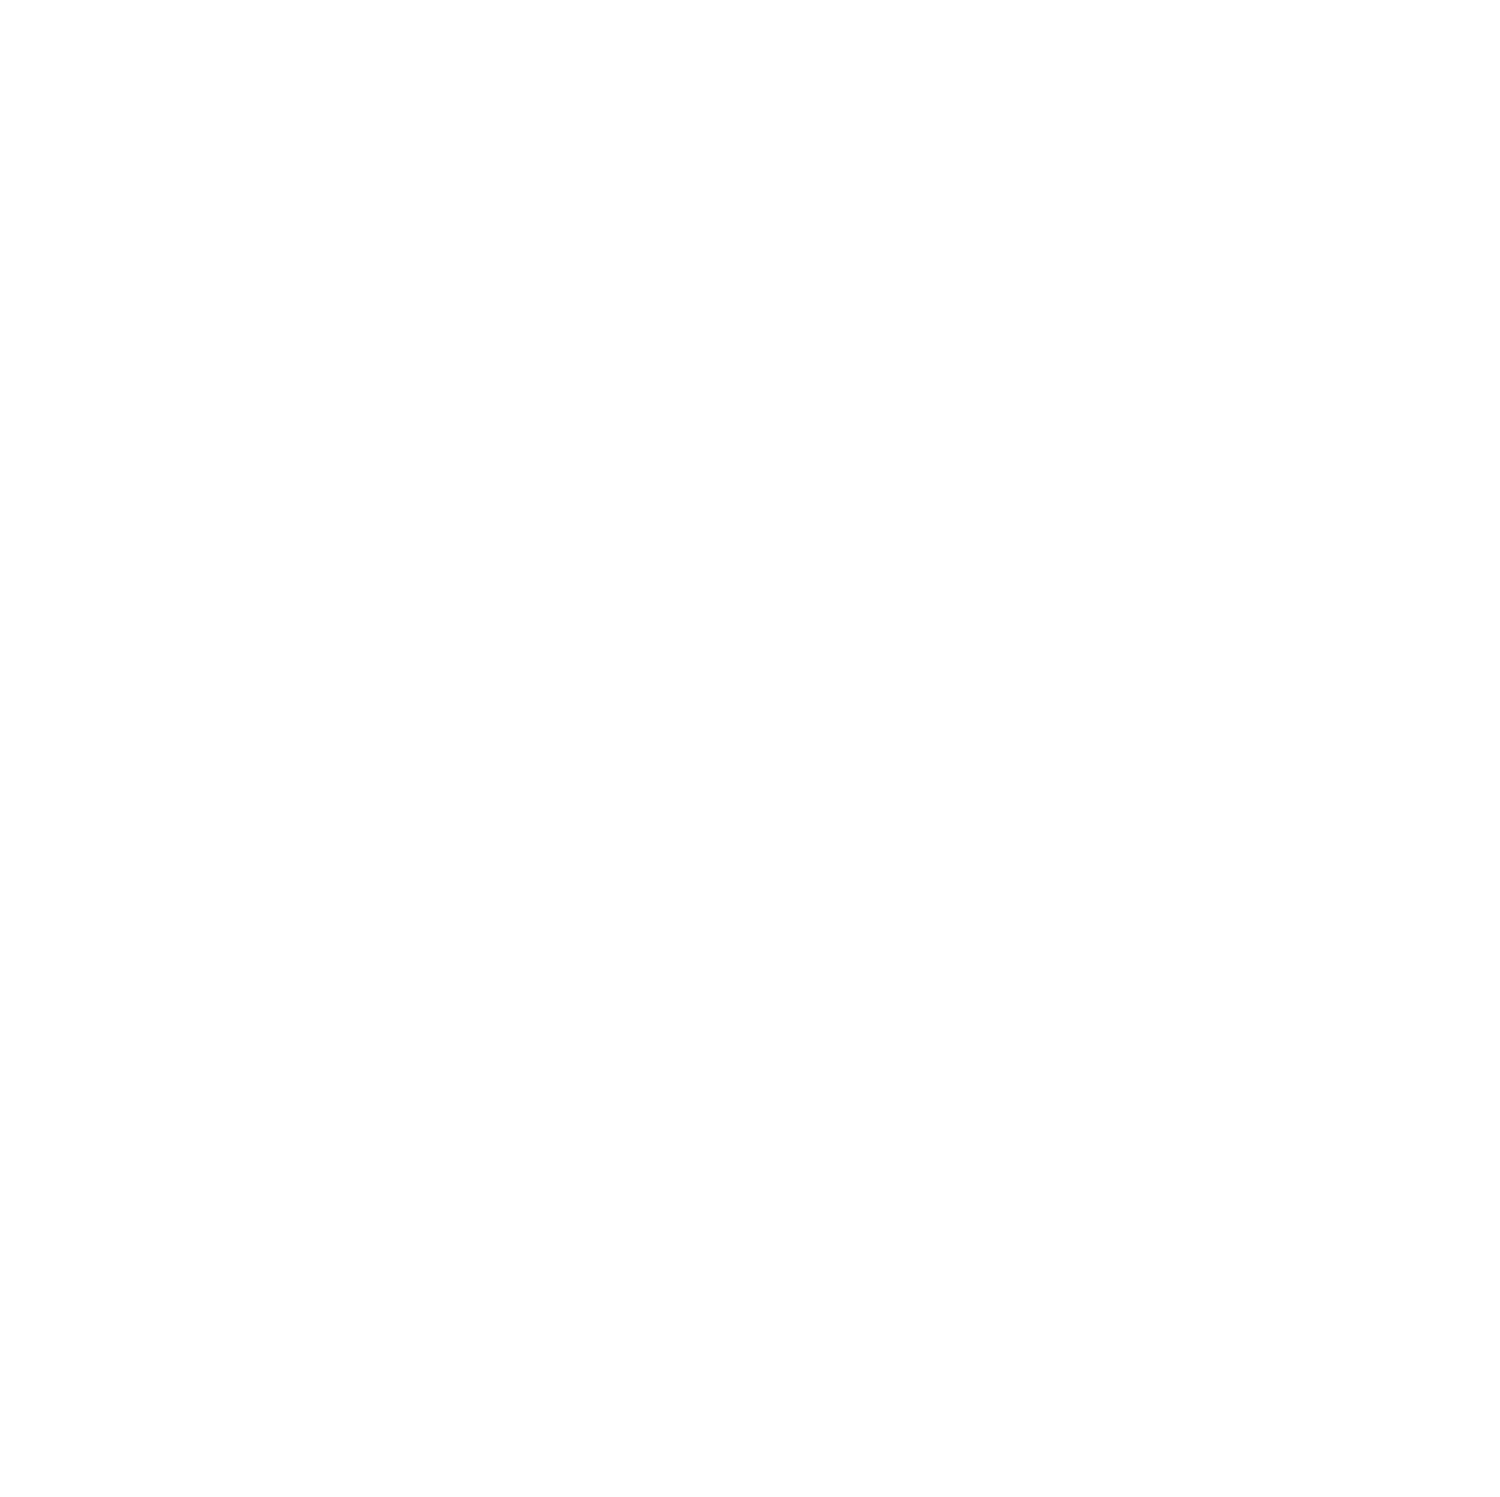 Rachael Bowman Photography - Raleigh NC Wedding and Lifestyle Photographer